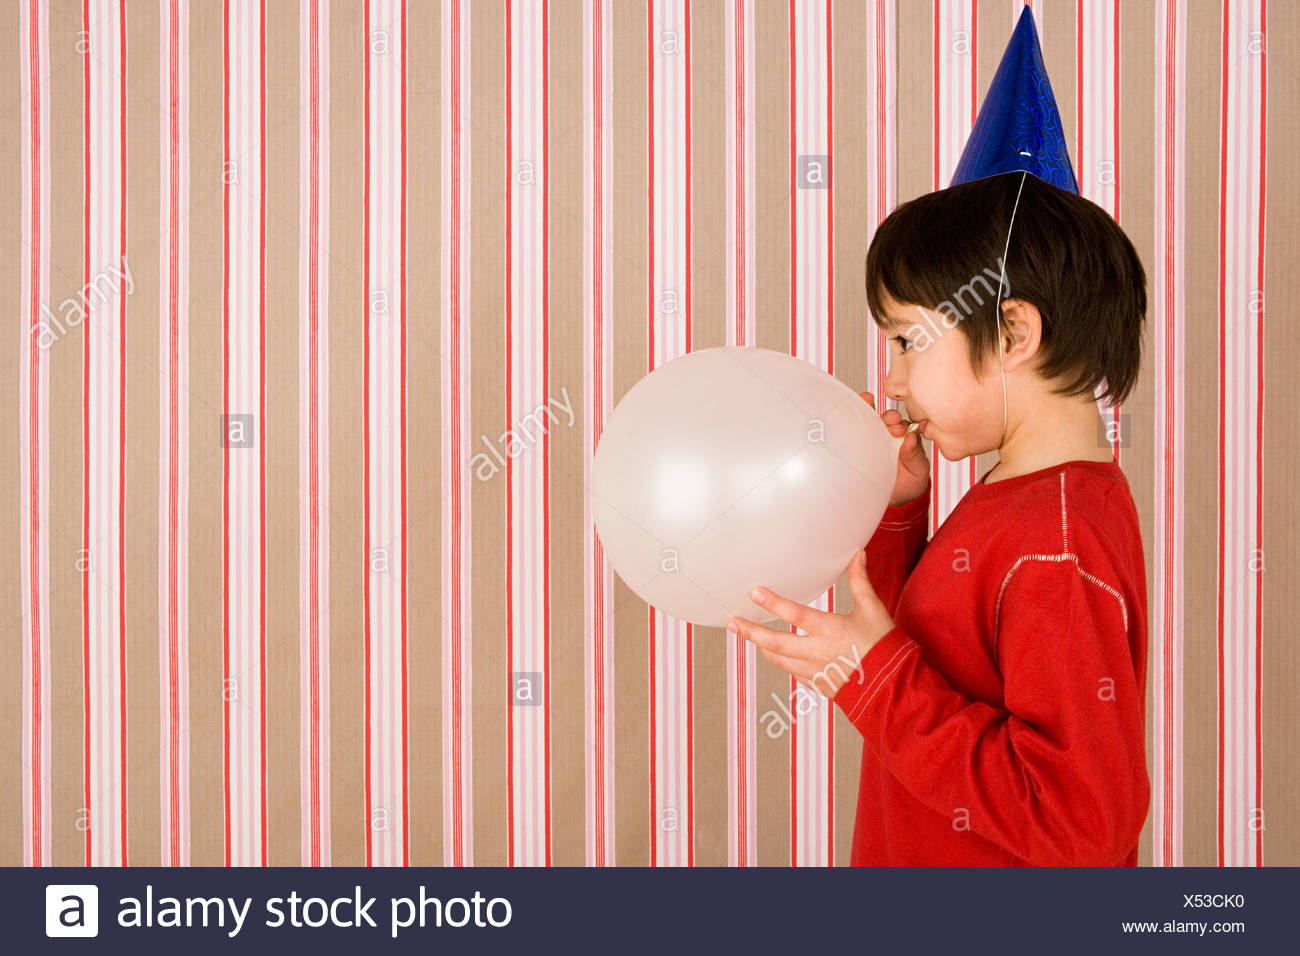 Boy blowing up balloon - Stock Image